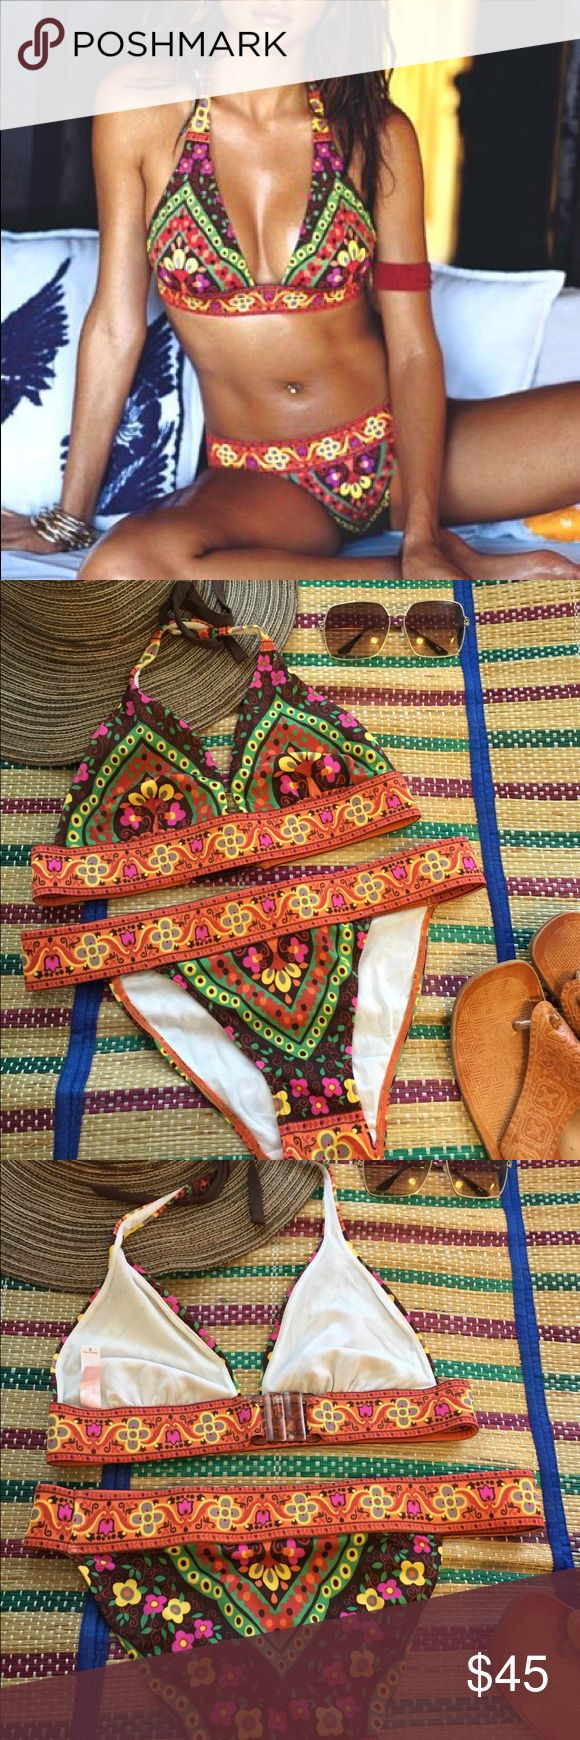 Tribal Victoria Secret Bikini Spice up you beach look with this two piece Tribal inspired swimsuit from Victoria's Secret. Size: S both bottom & halter top. Never been worn. NWOT in perfect condition. Victoria's Secret Swim Bikinis